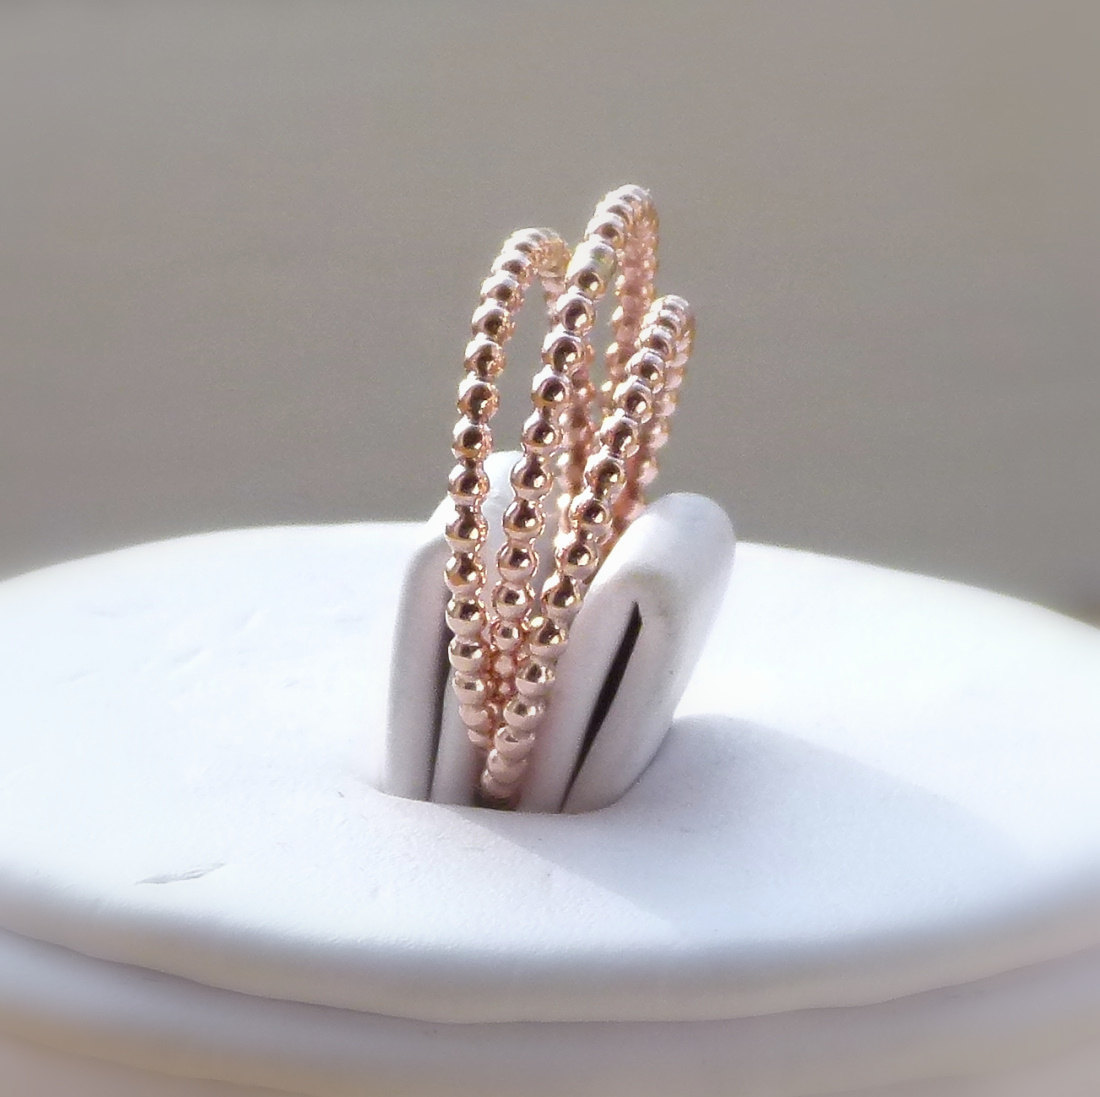 3 14k rose gold filled dotted full beaded unique stackable rings stackable wedding bands 3 14k ROSE gold filled dotted full beaded unique stackable rings